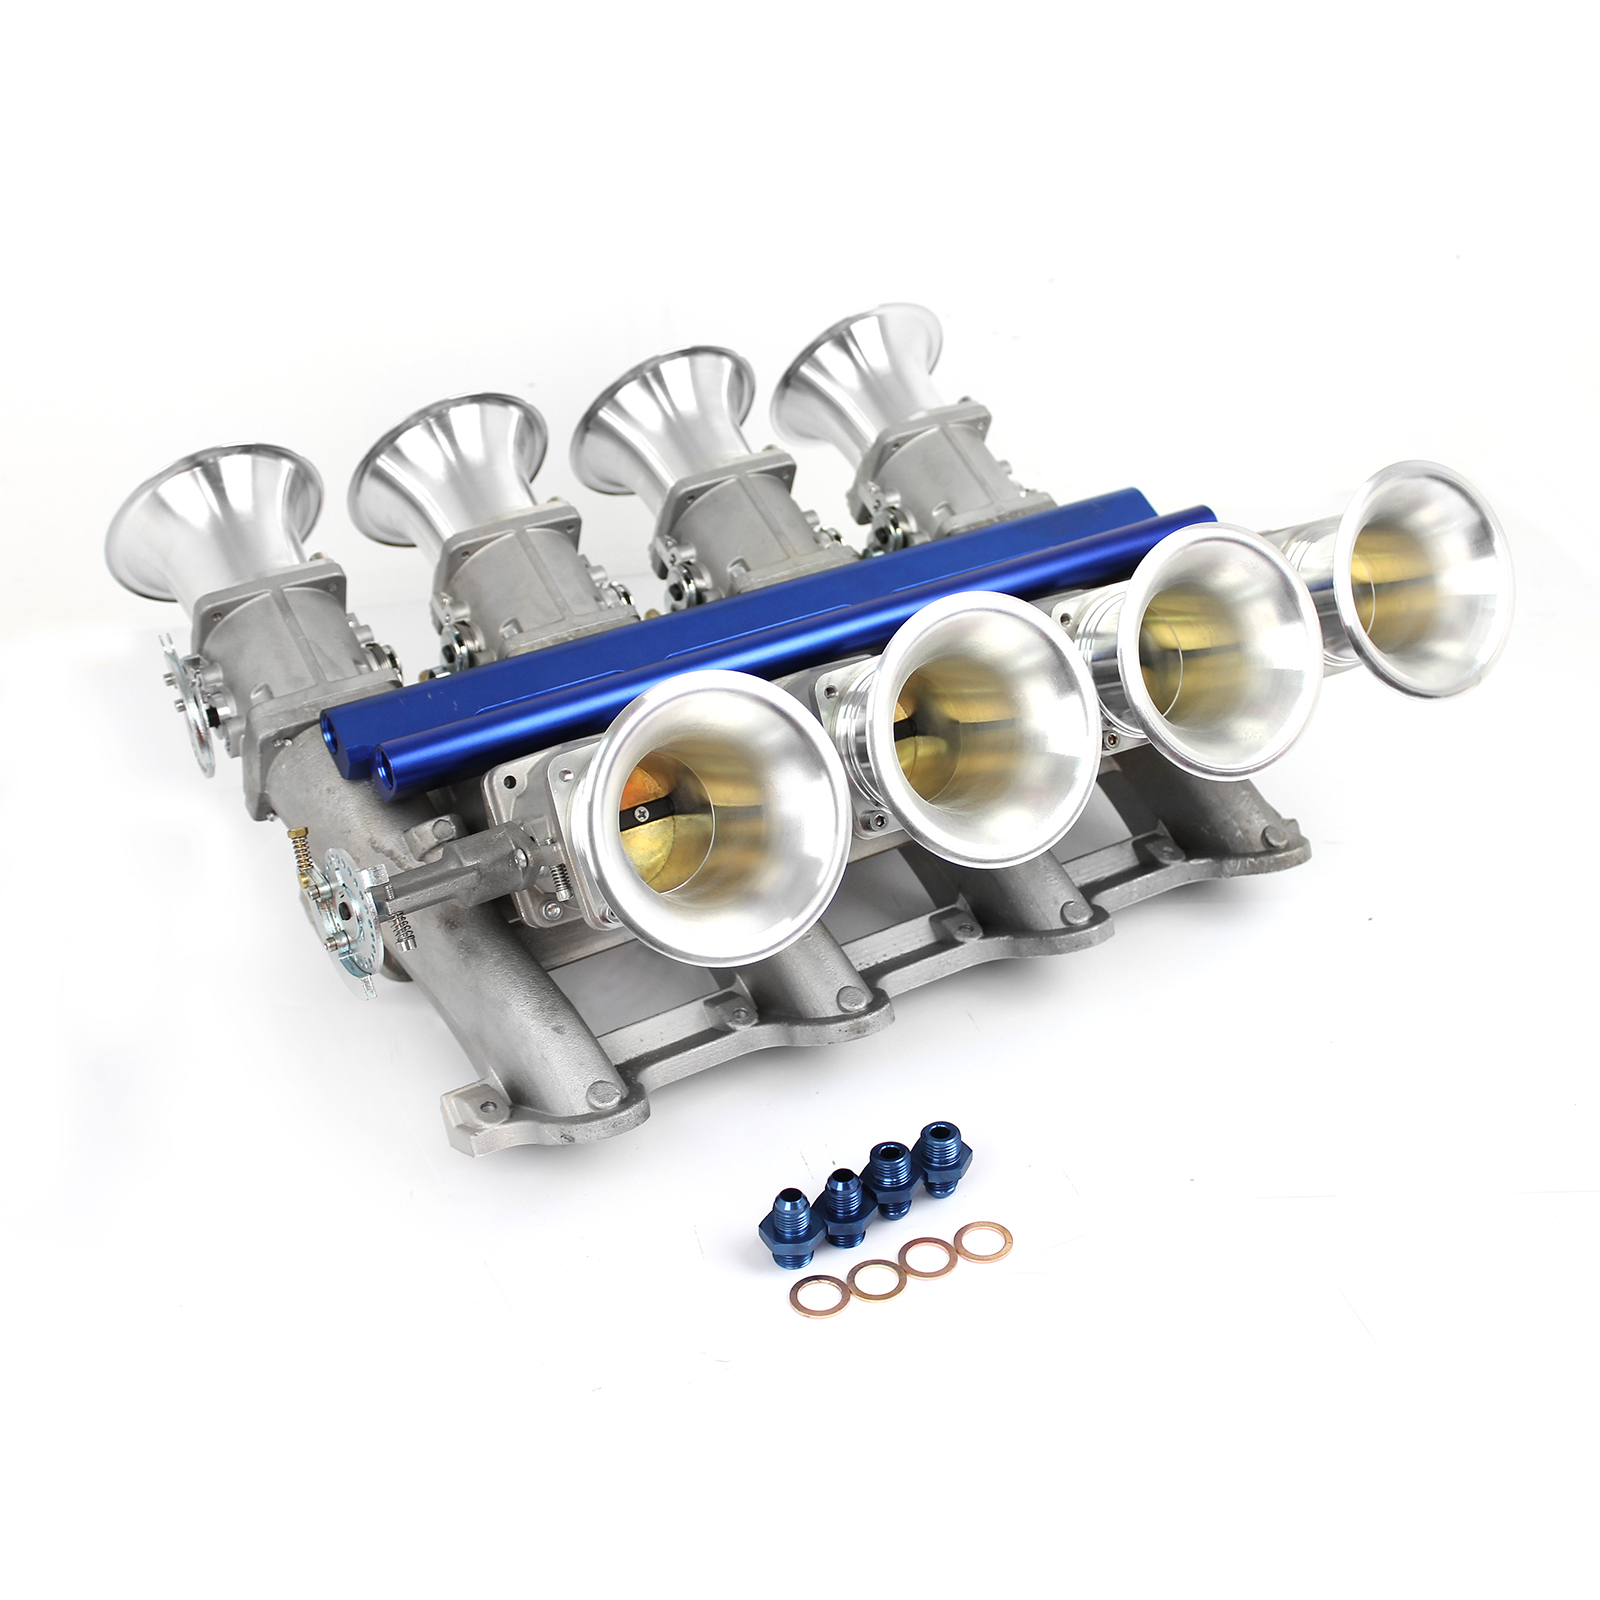 Chevy LS3 Side Draft EFI Stack Intake Manifold System